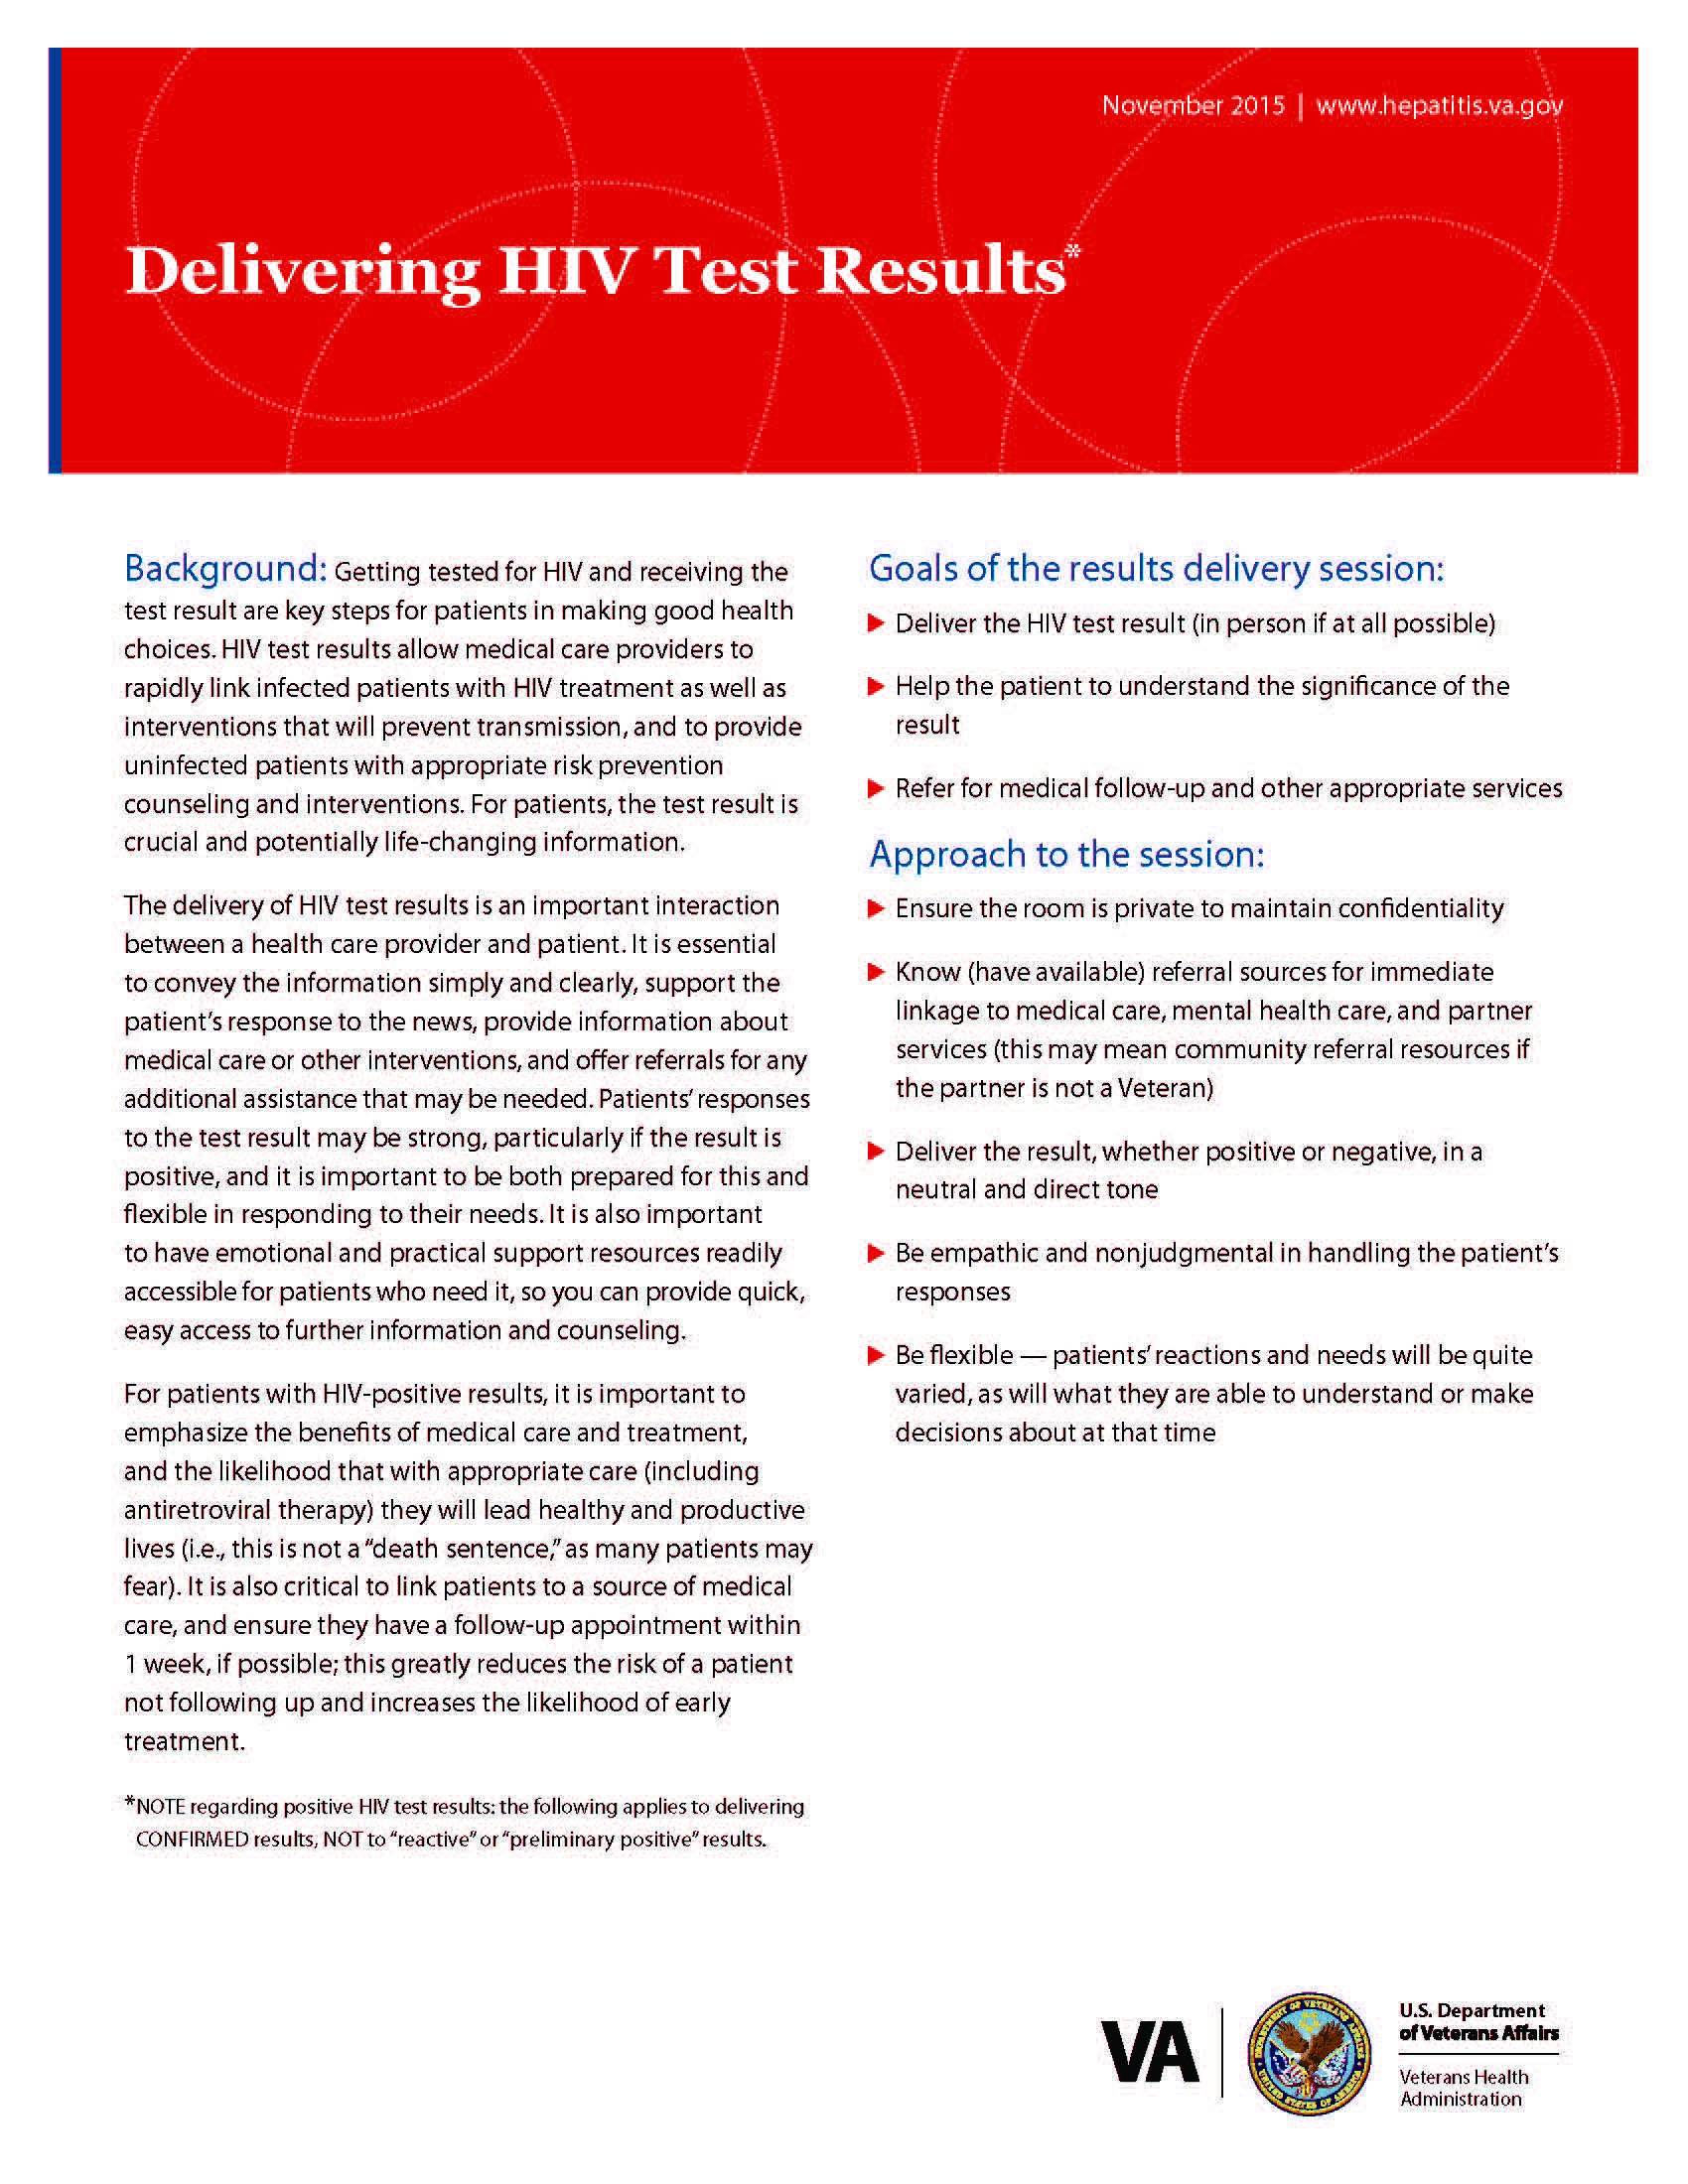 Publications And Products On Hiv Aids